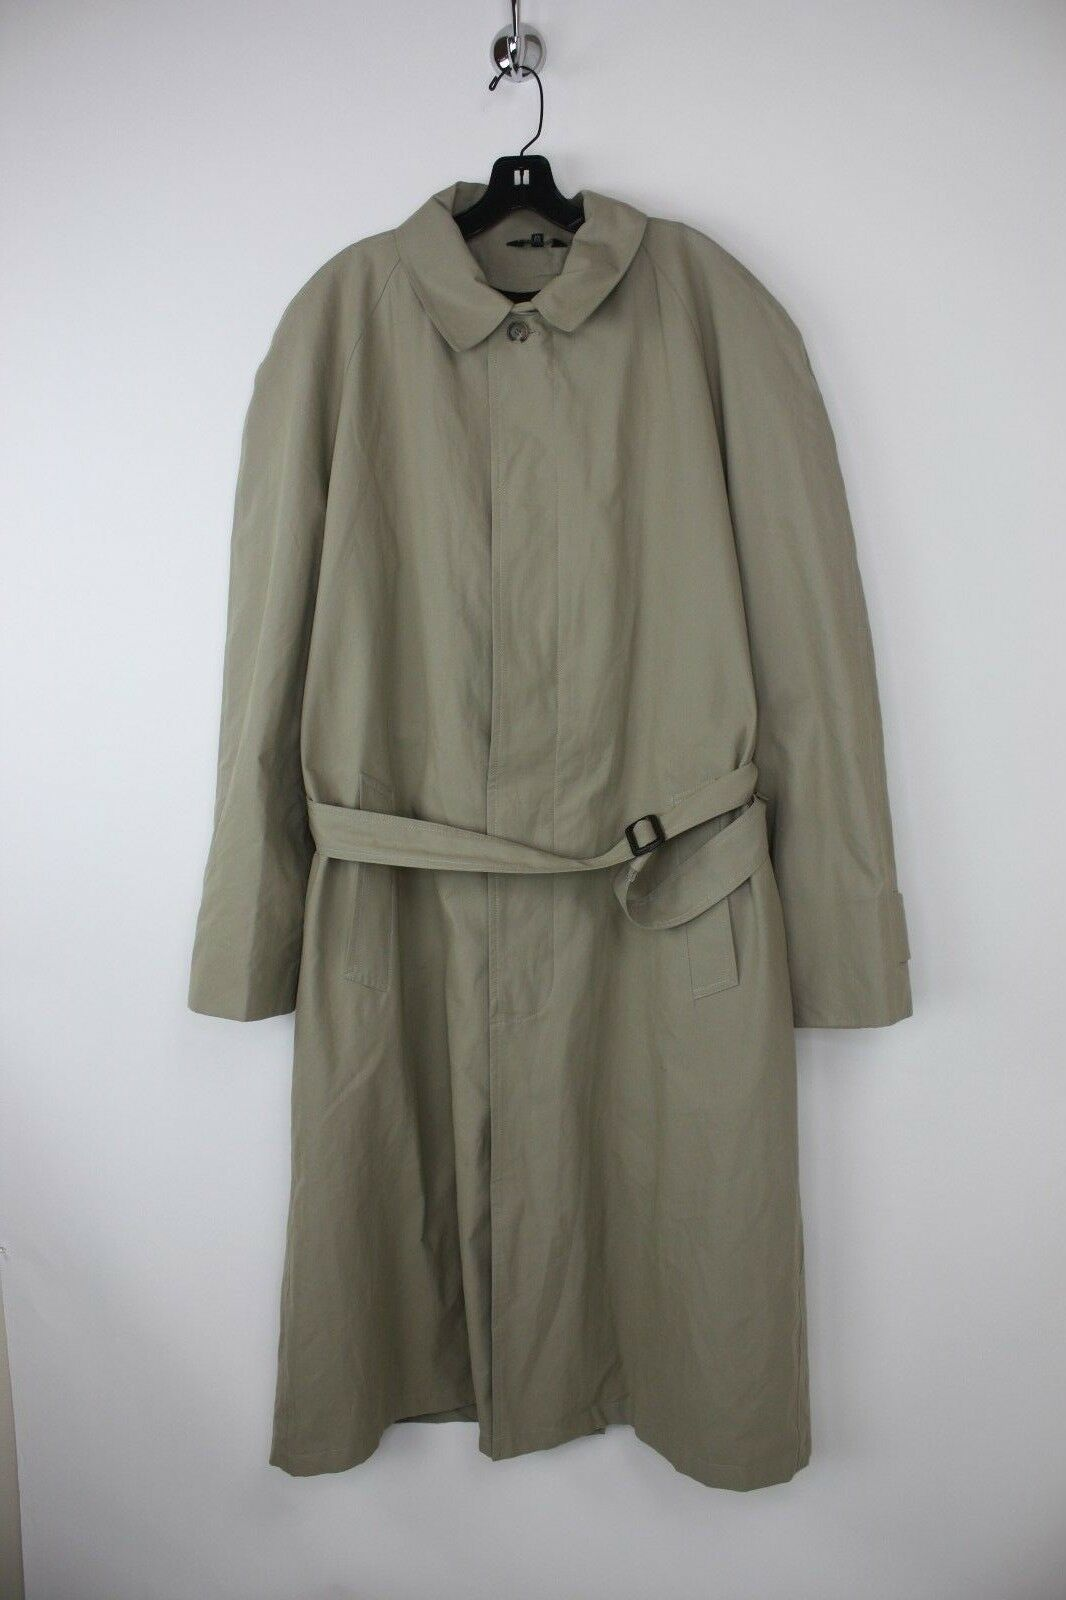 JOS A. BANK Khaki/Tan Full Length Overcoat Belted Zip Out Lining Sz 42L EUC